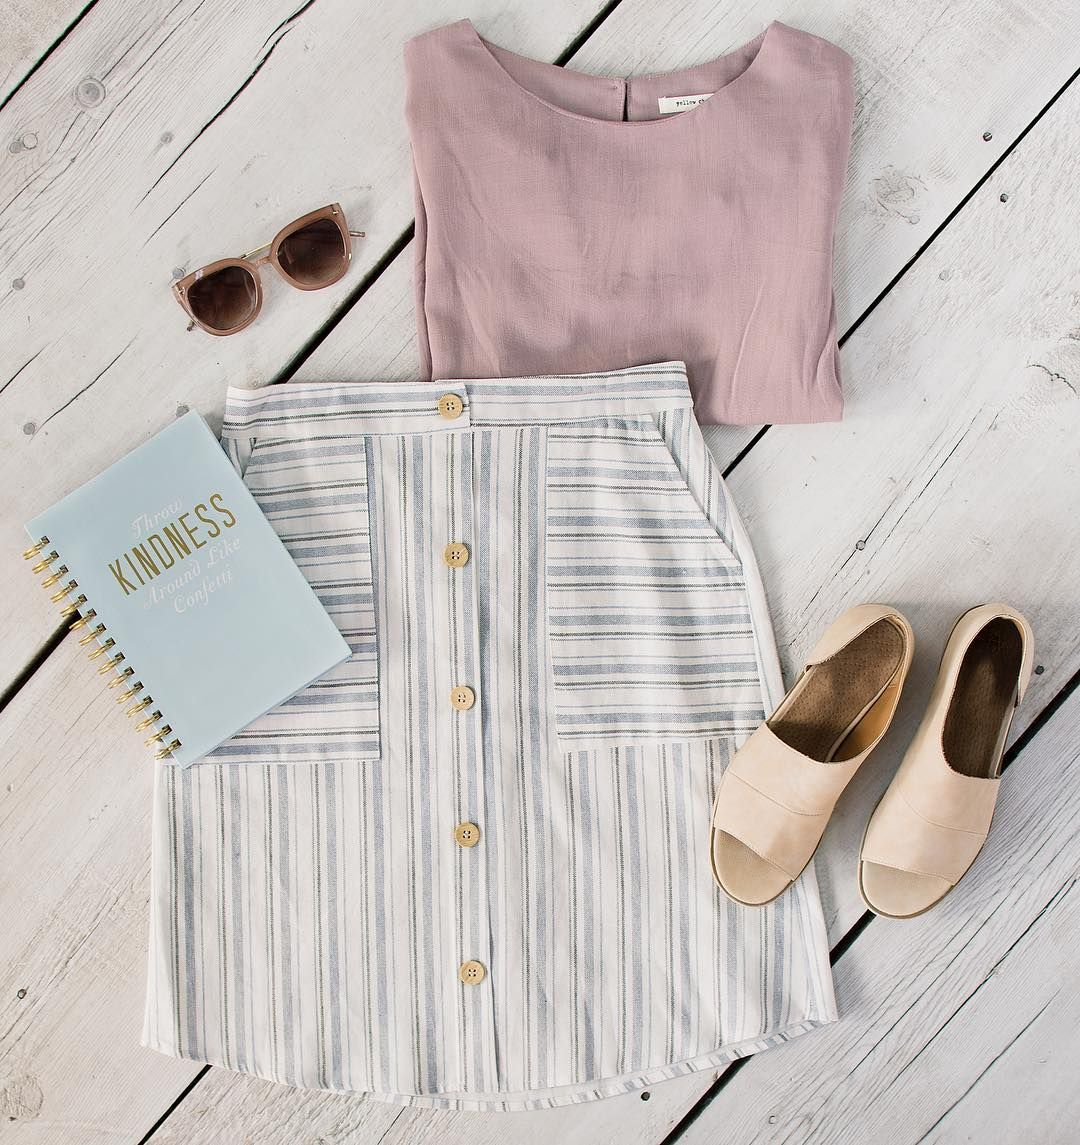 Spring has arrived with all our favorite trends — sweet shades, pastels, stripes, and slides!